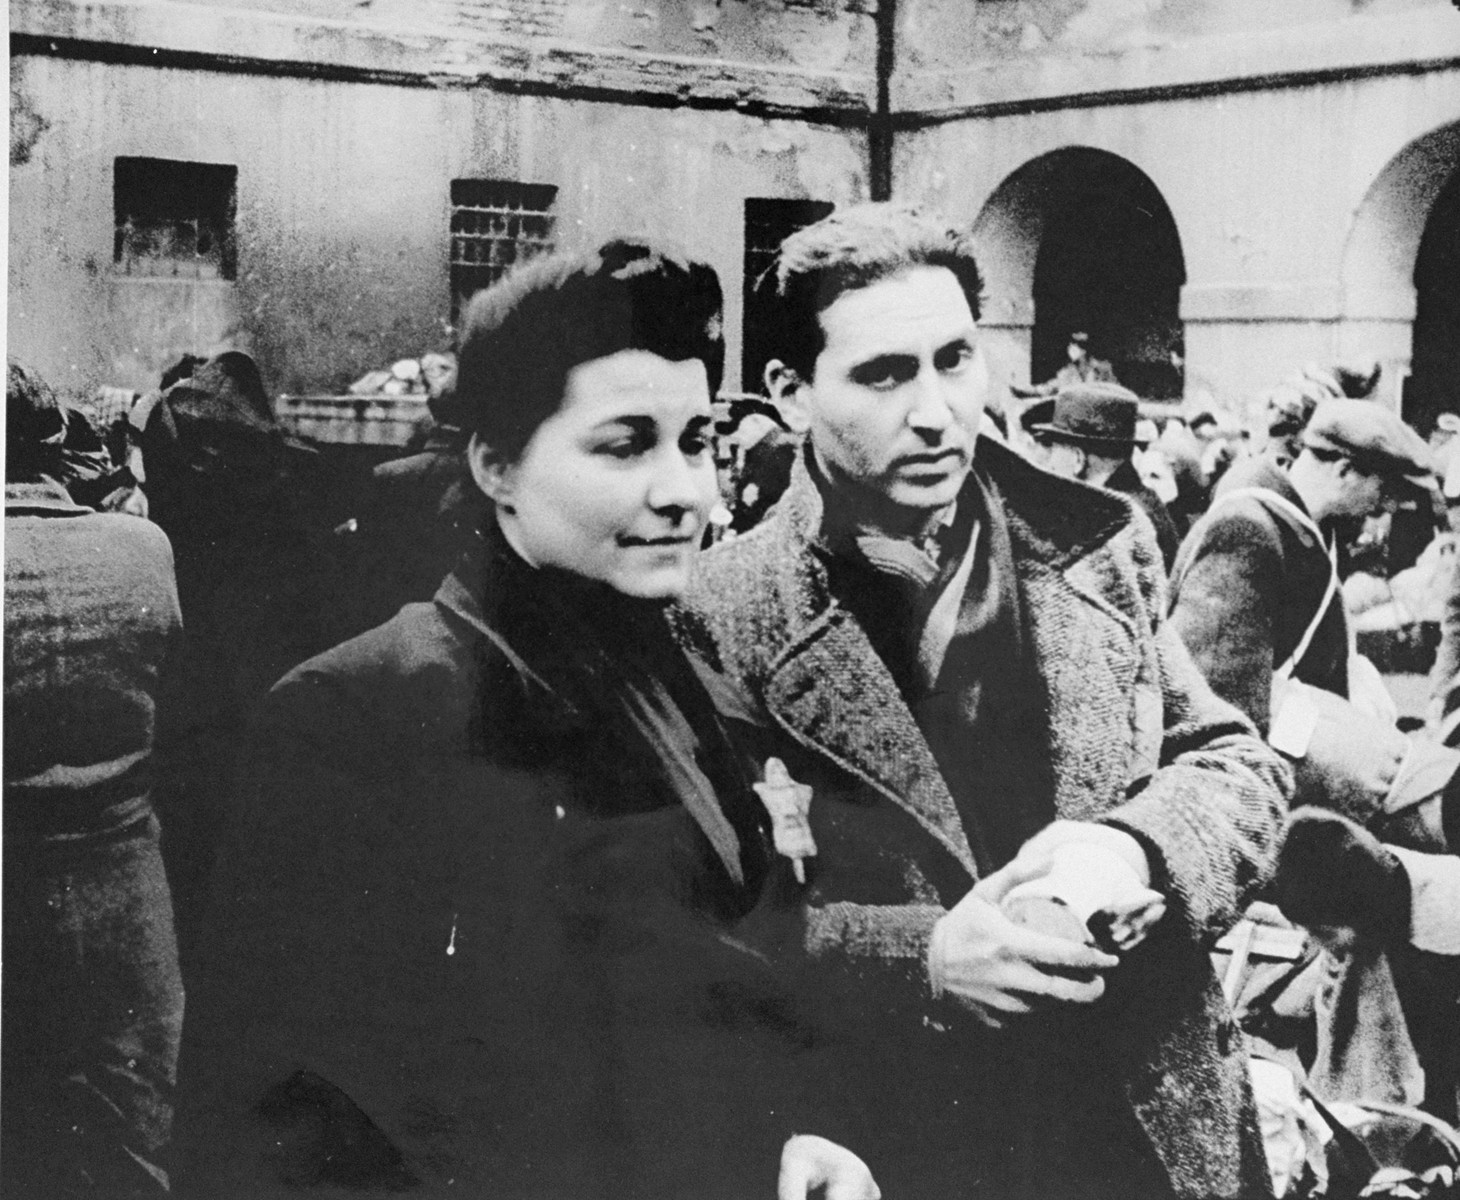 A couple who has just arrived in Theresienstadt with a transport of Dutch Jews waits in the main courtyard of the ghetto. [oversized photo]